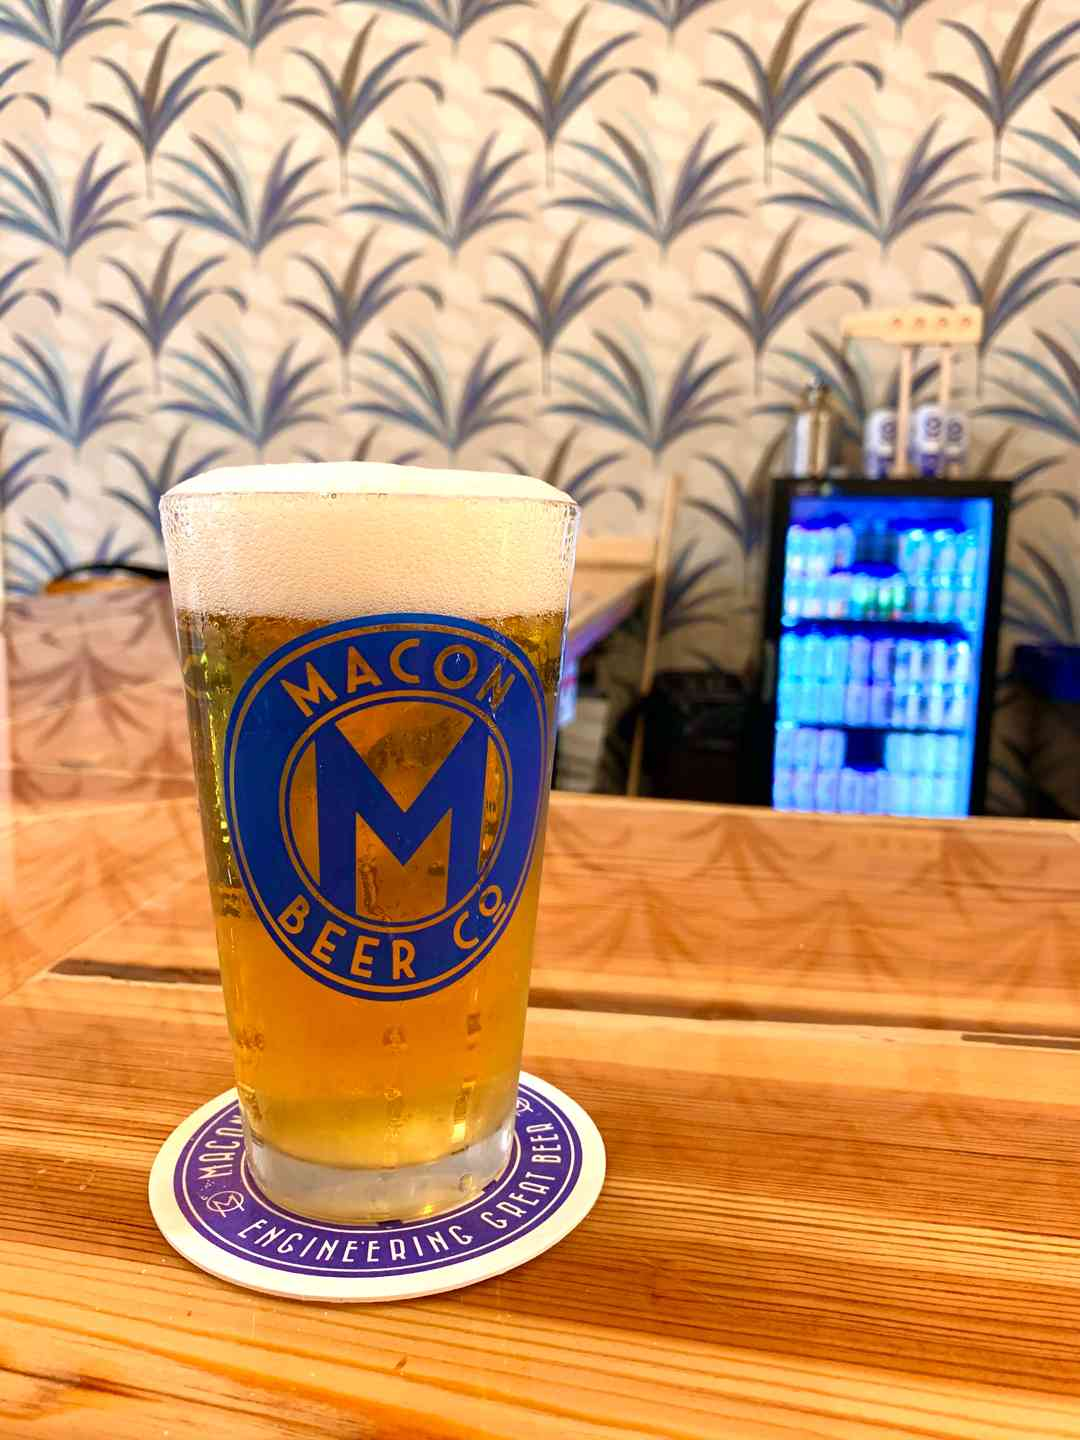 Macon Dreams 5% (Peach Blonde Ale)